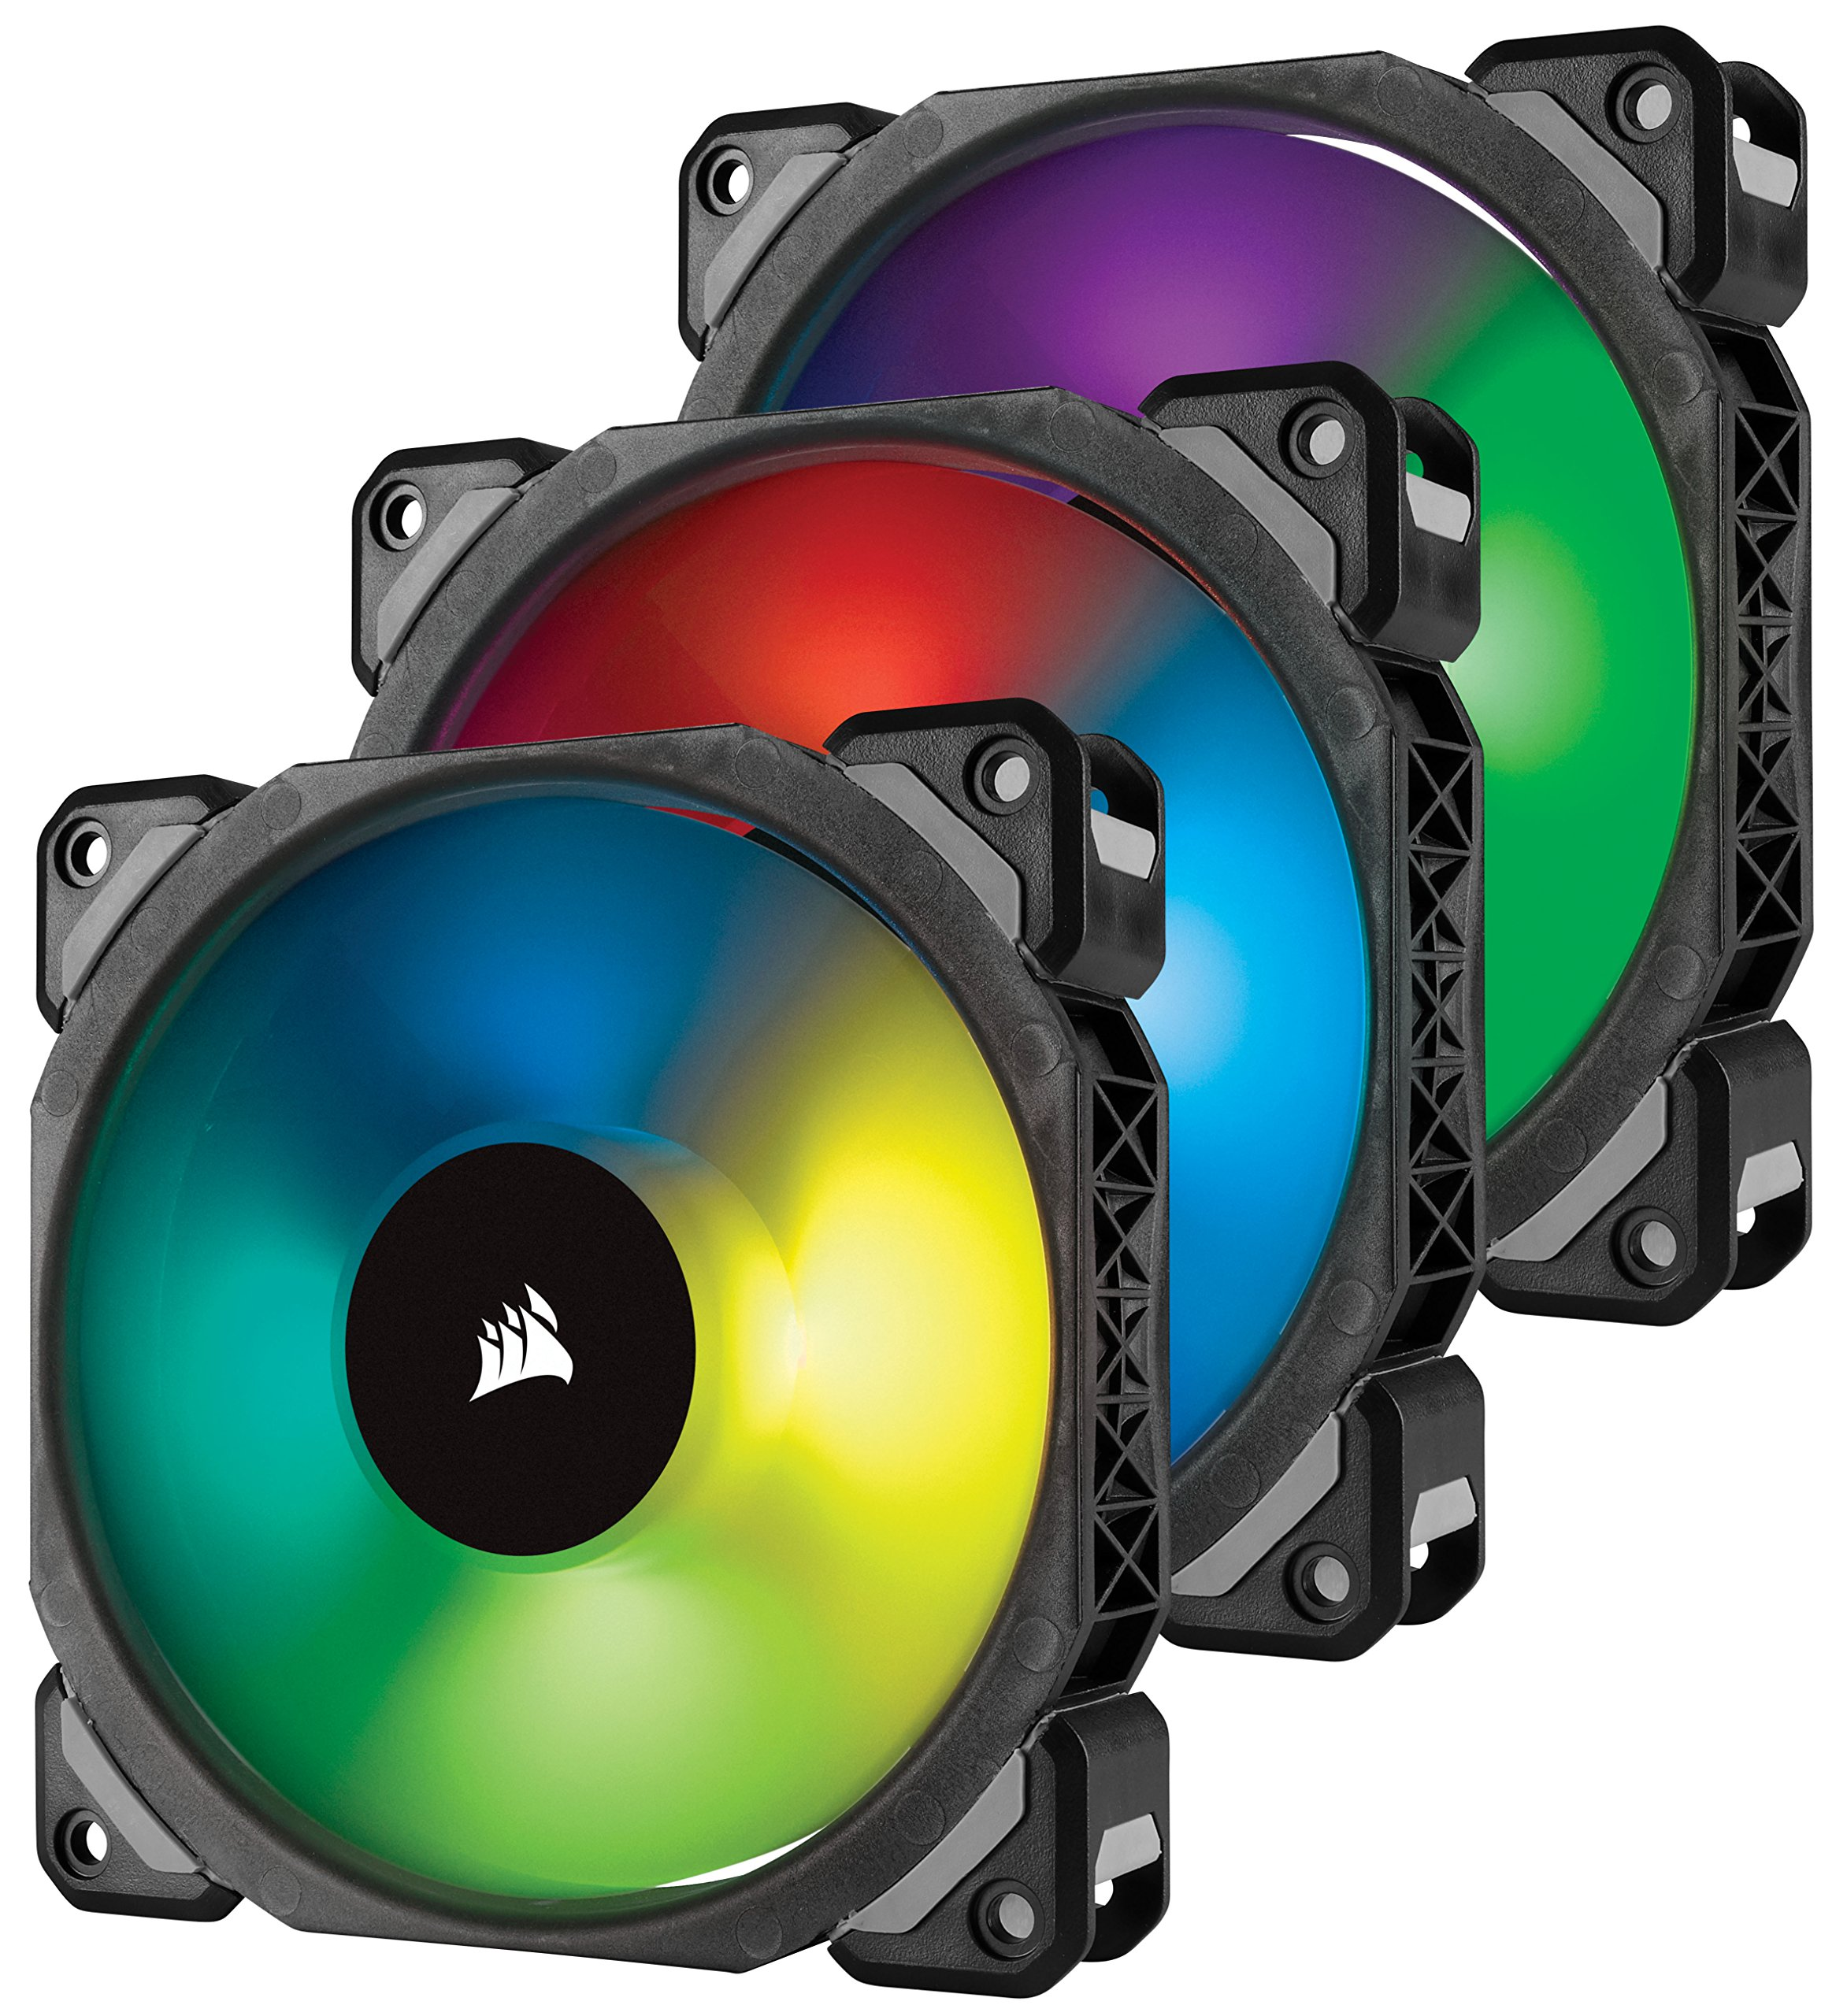 Corsair ML120 PRO 120mm Premium Magnetic Levitation RGB LED PWM Fan with Lighting Node 3 Pack (CO-9050076-WW) by Corsair